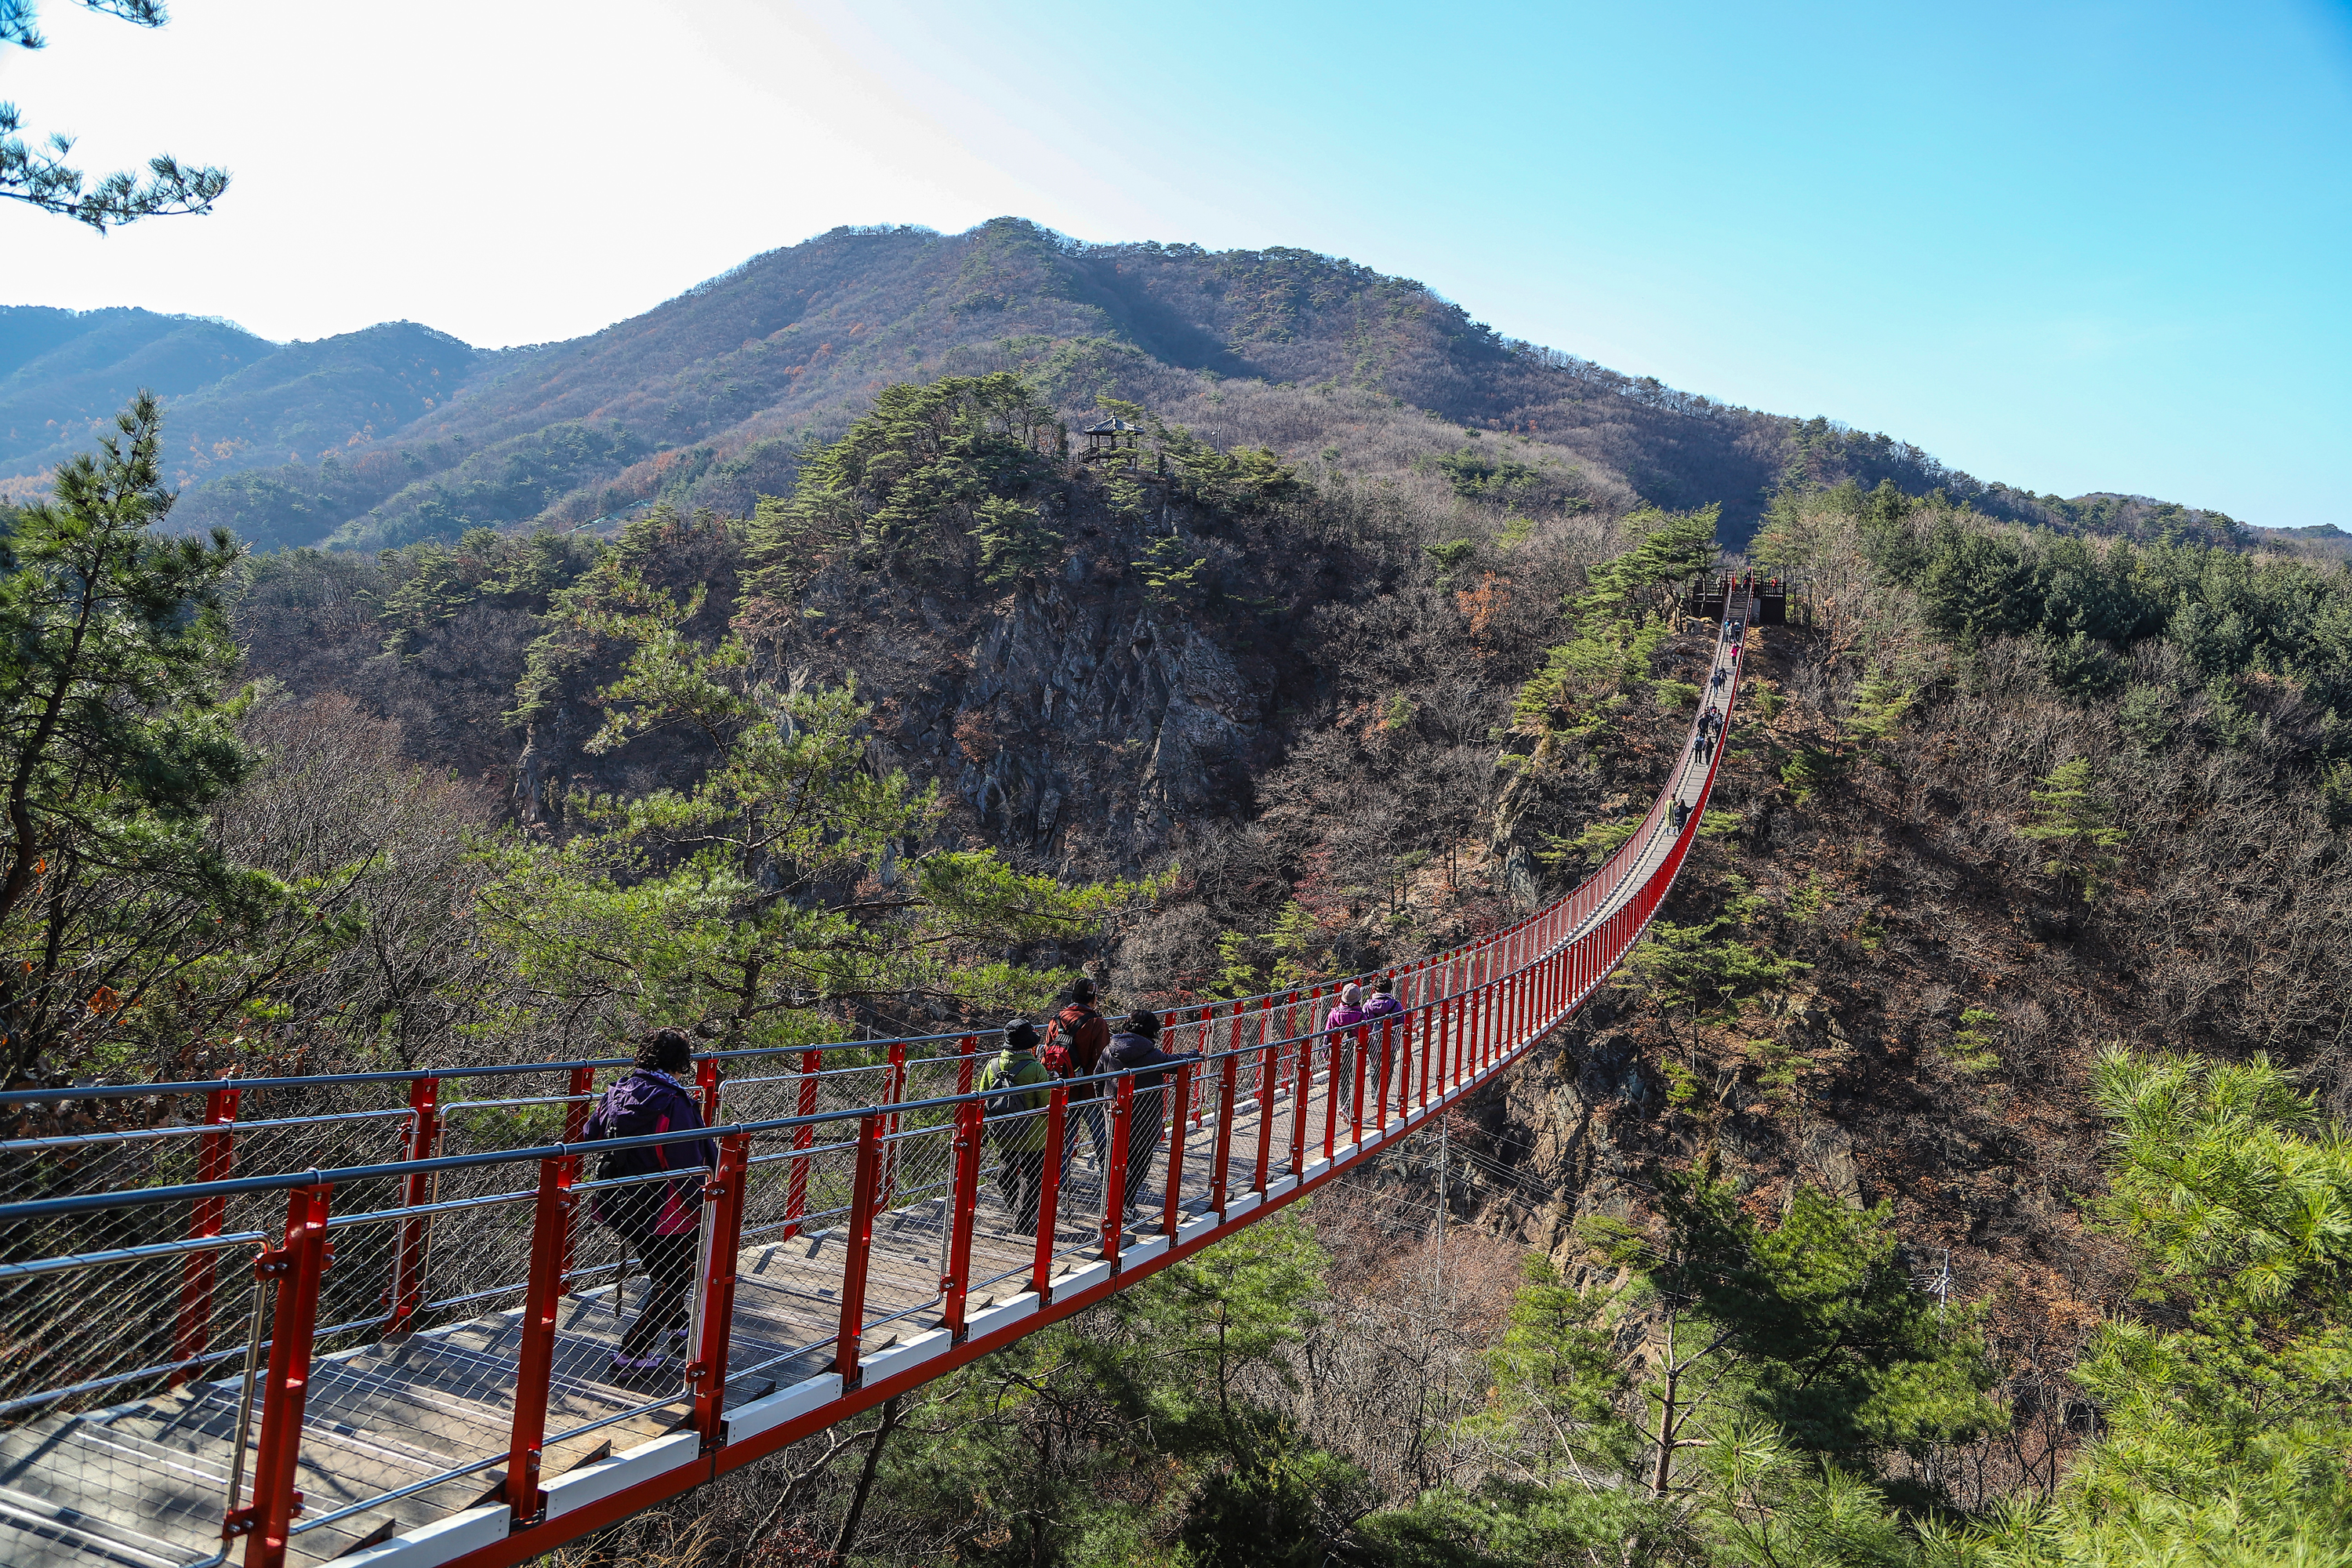 An open view of a thrilling Suspension Bridge of Gamaksan Mountain over dangeours rock face. A few visitors are walking on the bridge.